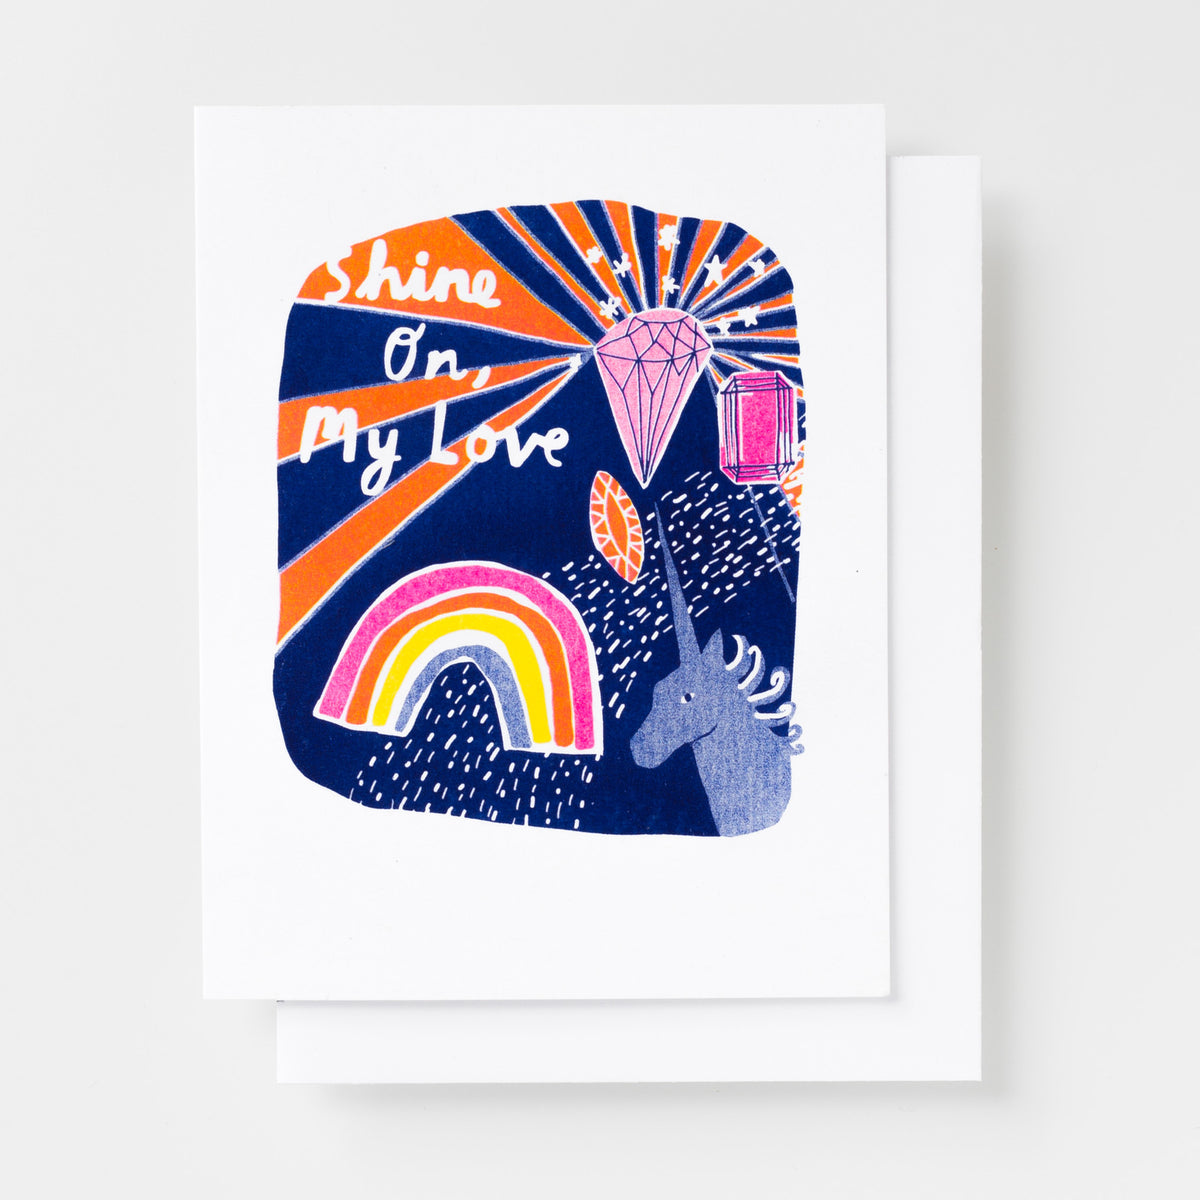 Risograph greeting card - Shine on, my love - love card, everyday card, handprinted greeting card